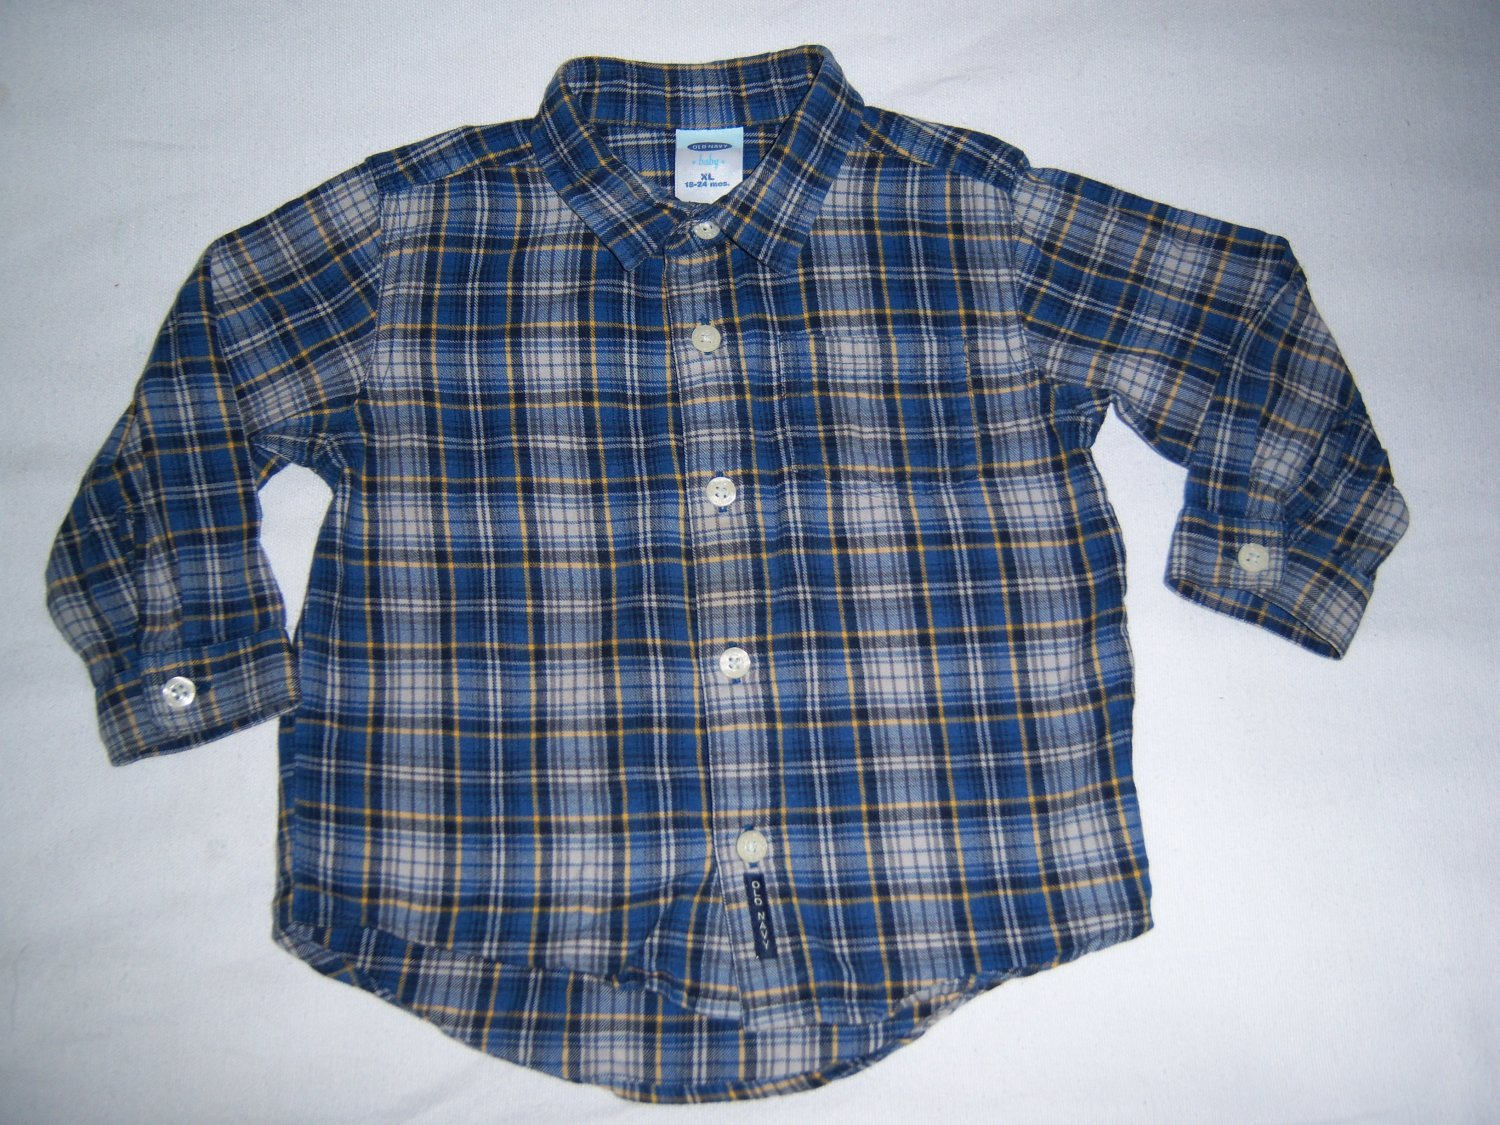 OLD NAVY LITTLE BOYS BLUE PLAID SHIRT SIZE 18-24 MONTHS